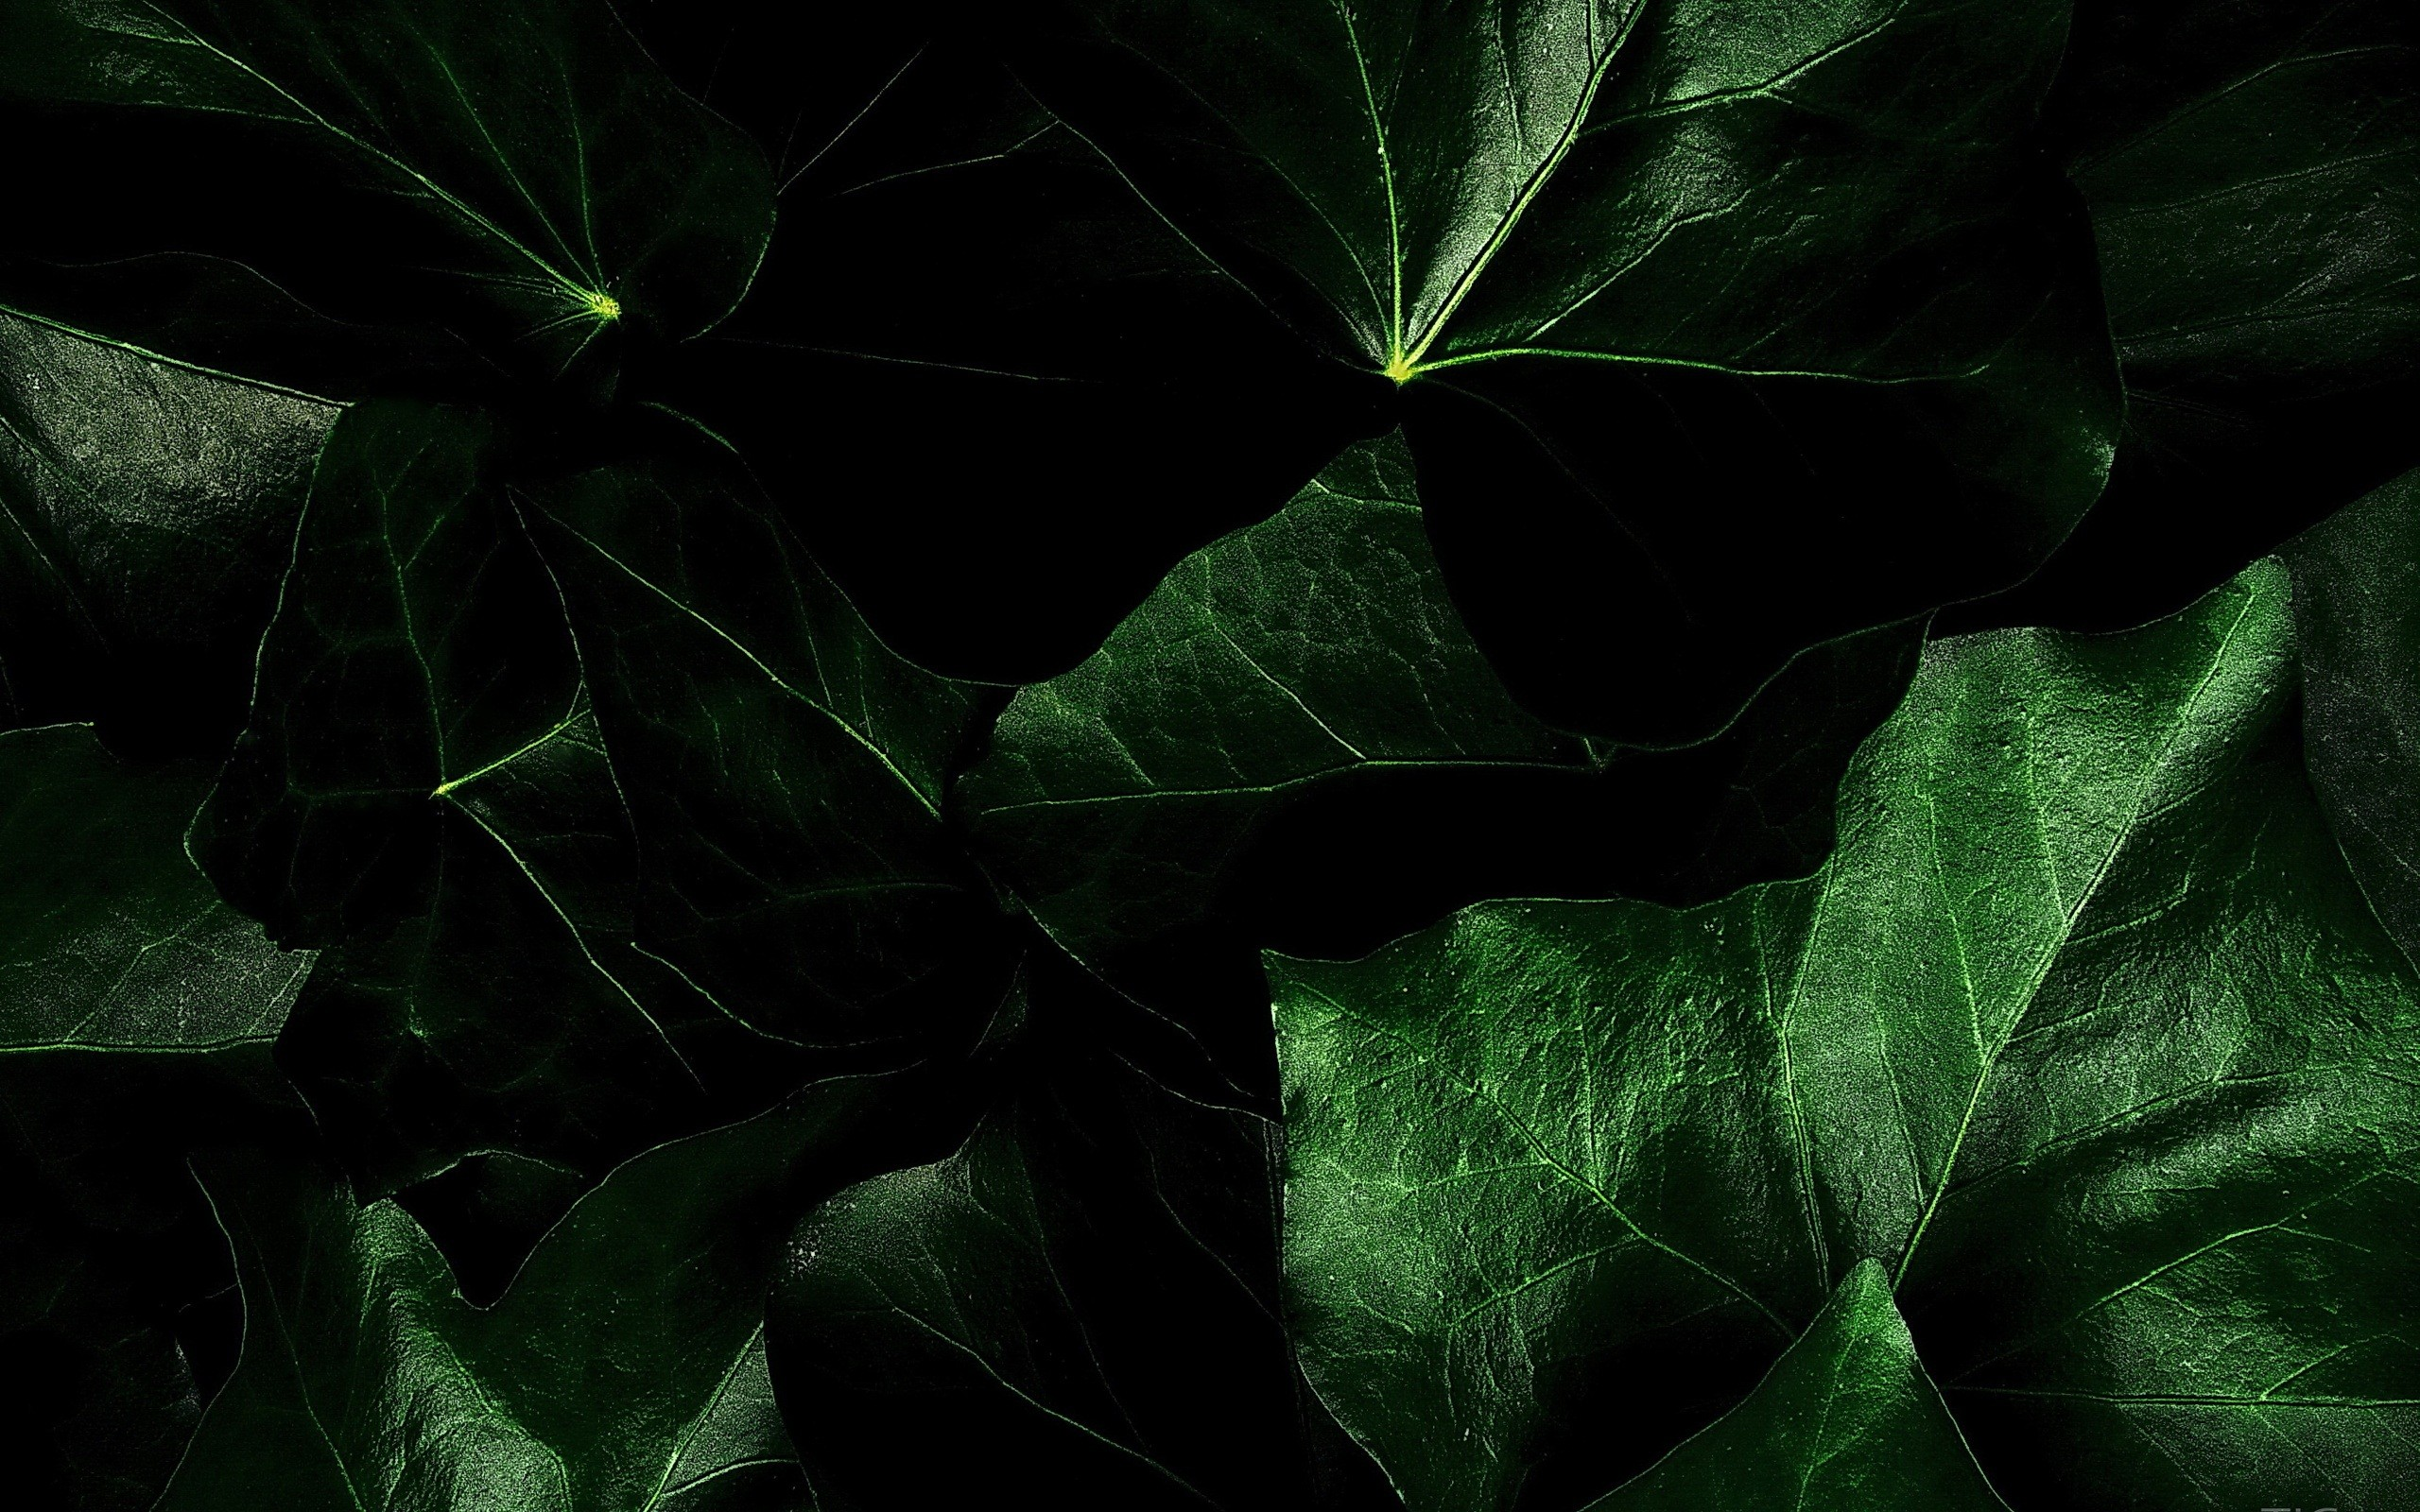 Dark Green Nature Wallpapers Mobile: Dark Green Background ·① Download Free High Resolution